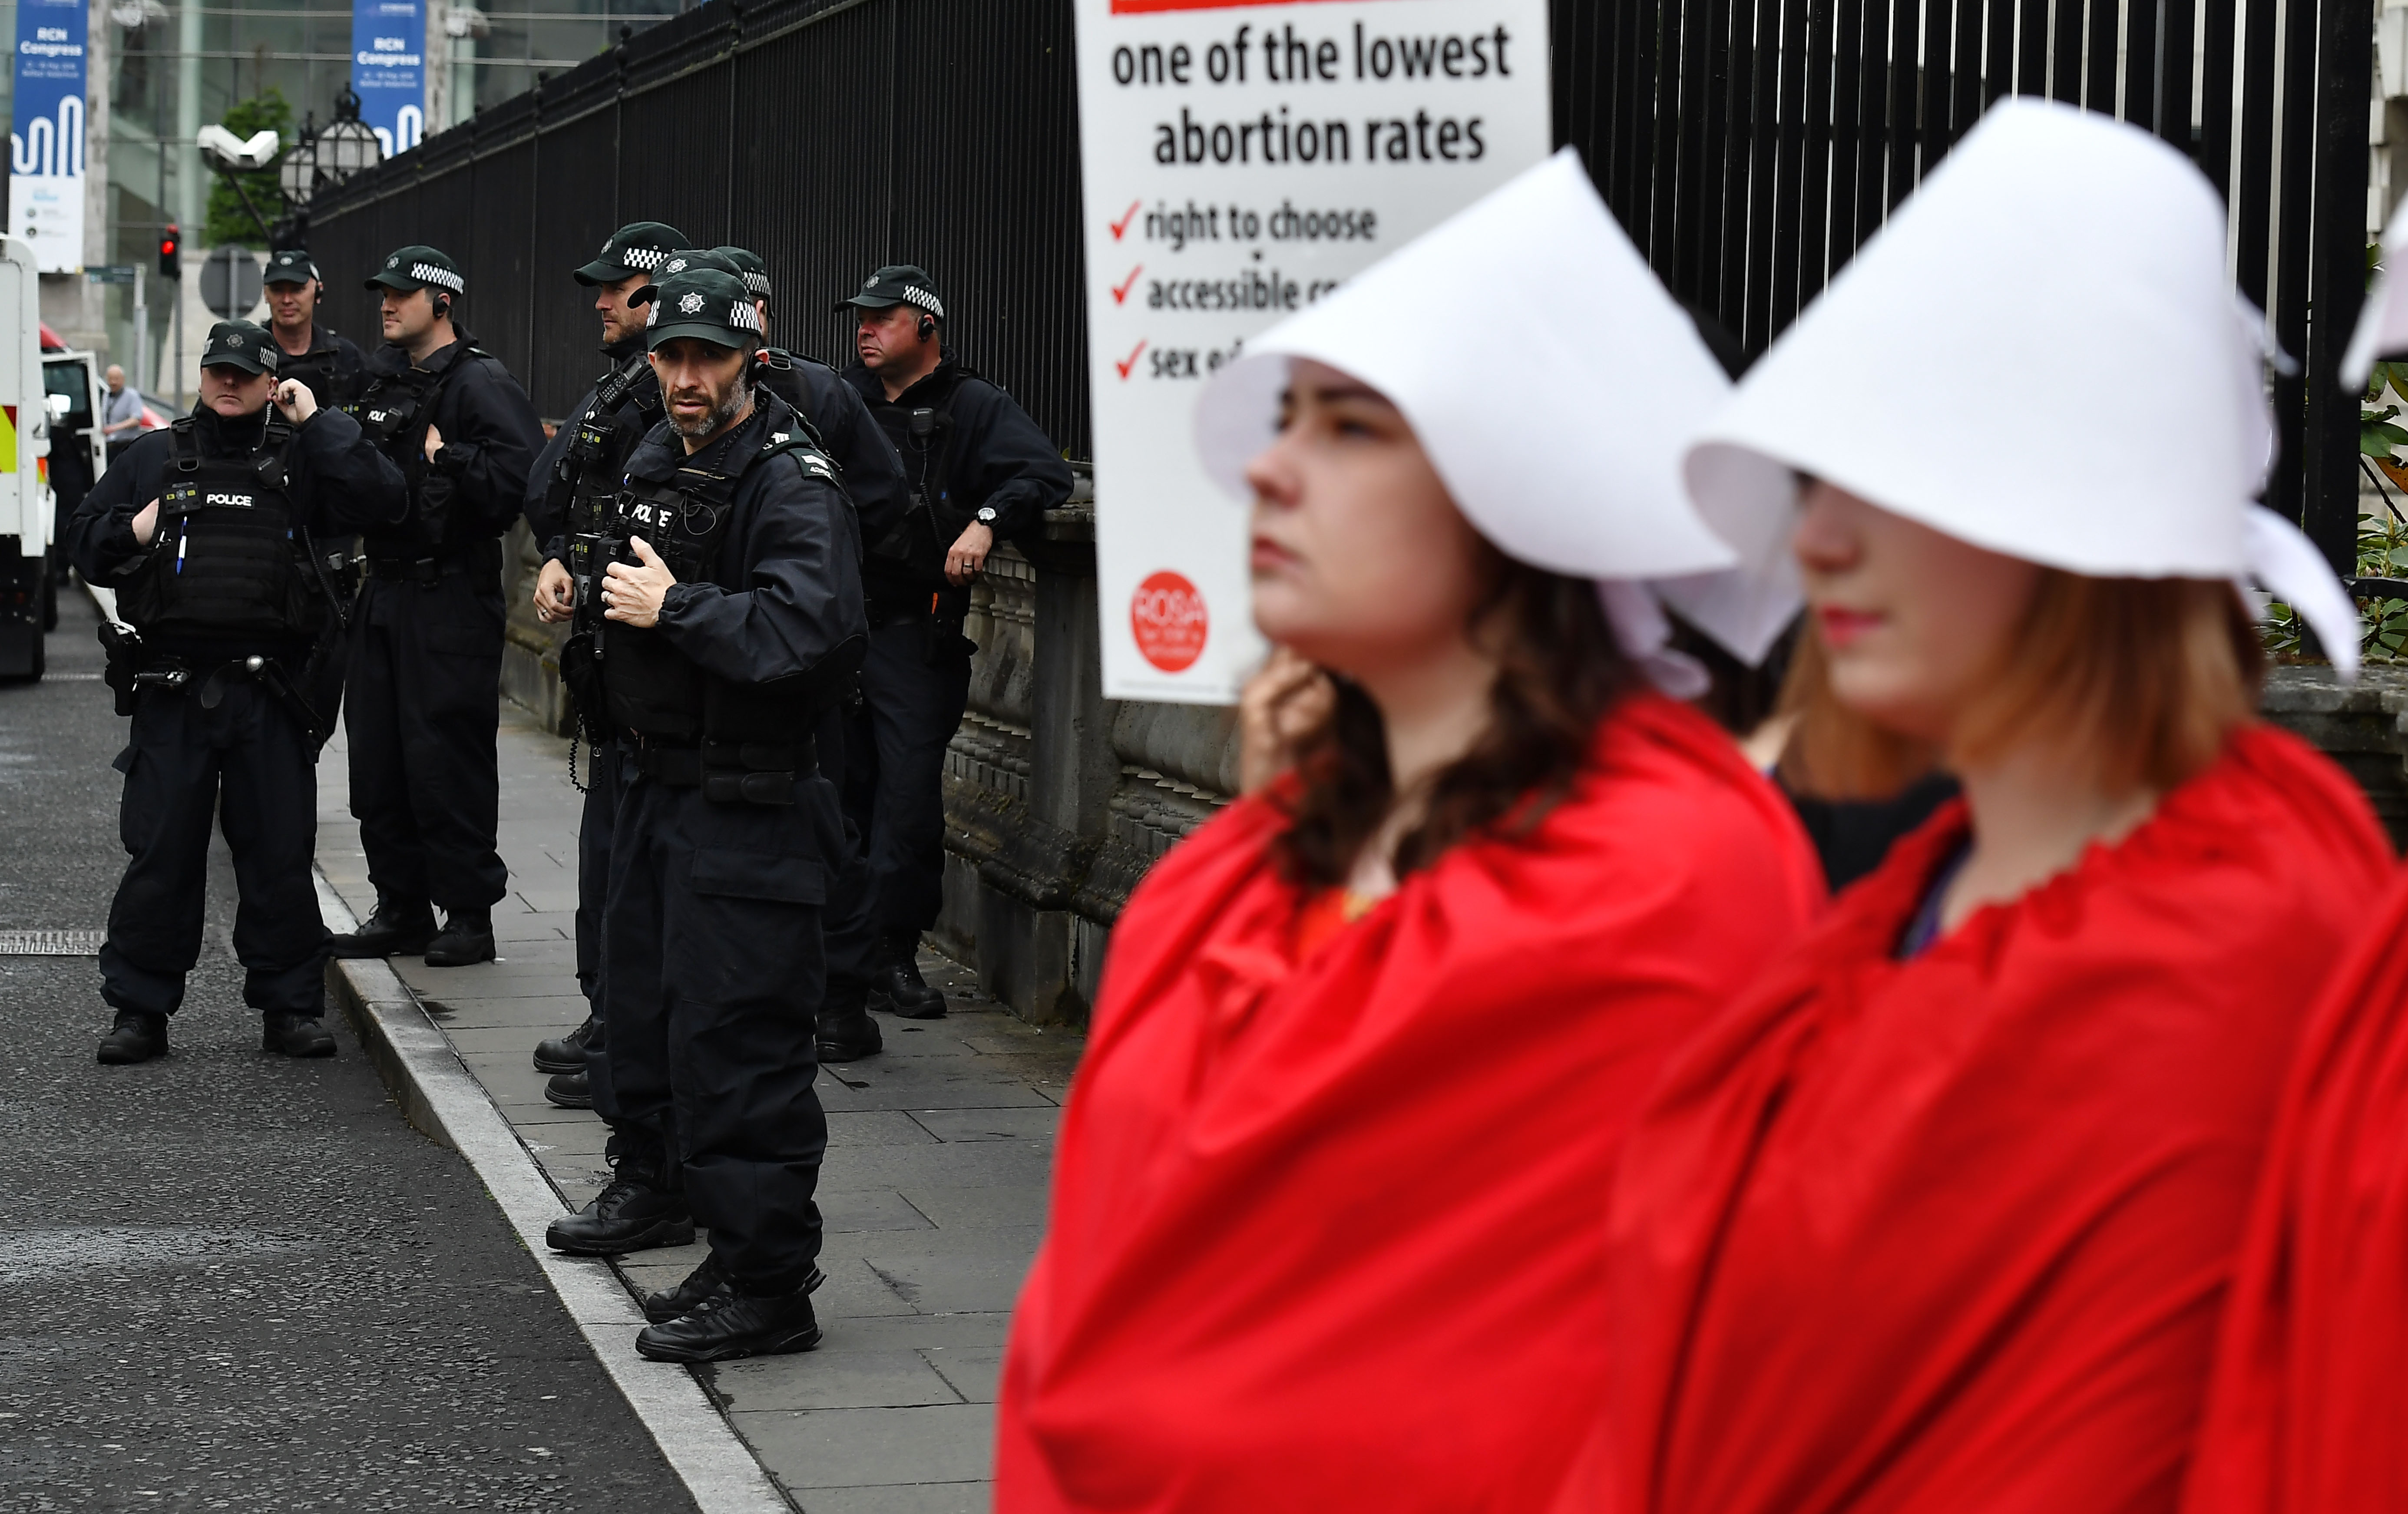 Women in Northern Ireland dressed like Handmaids and took the abortion pill to protest the country's abortion ban